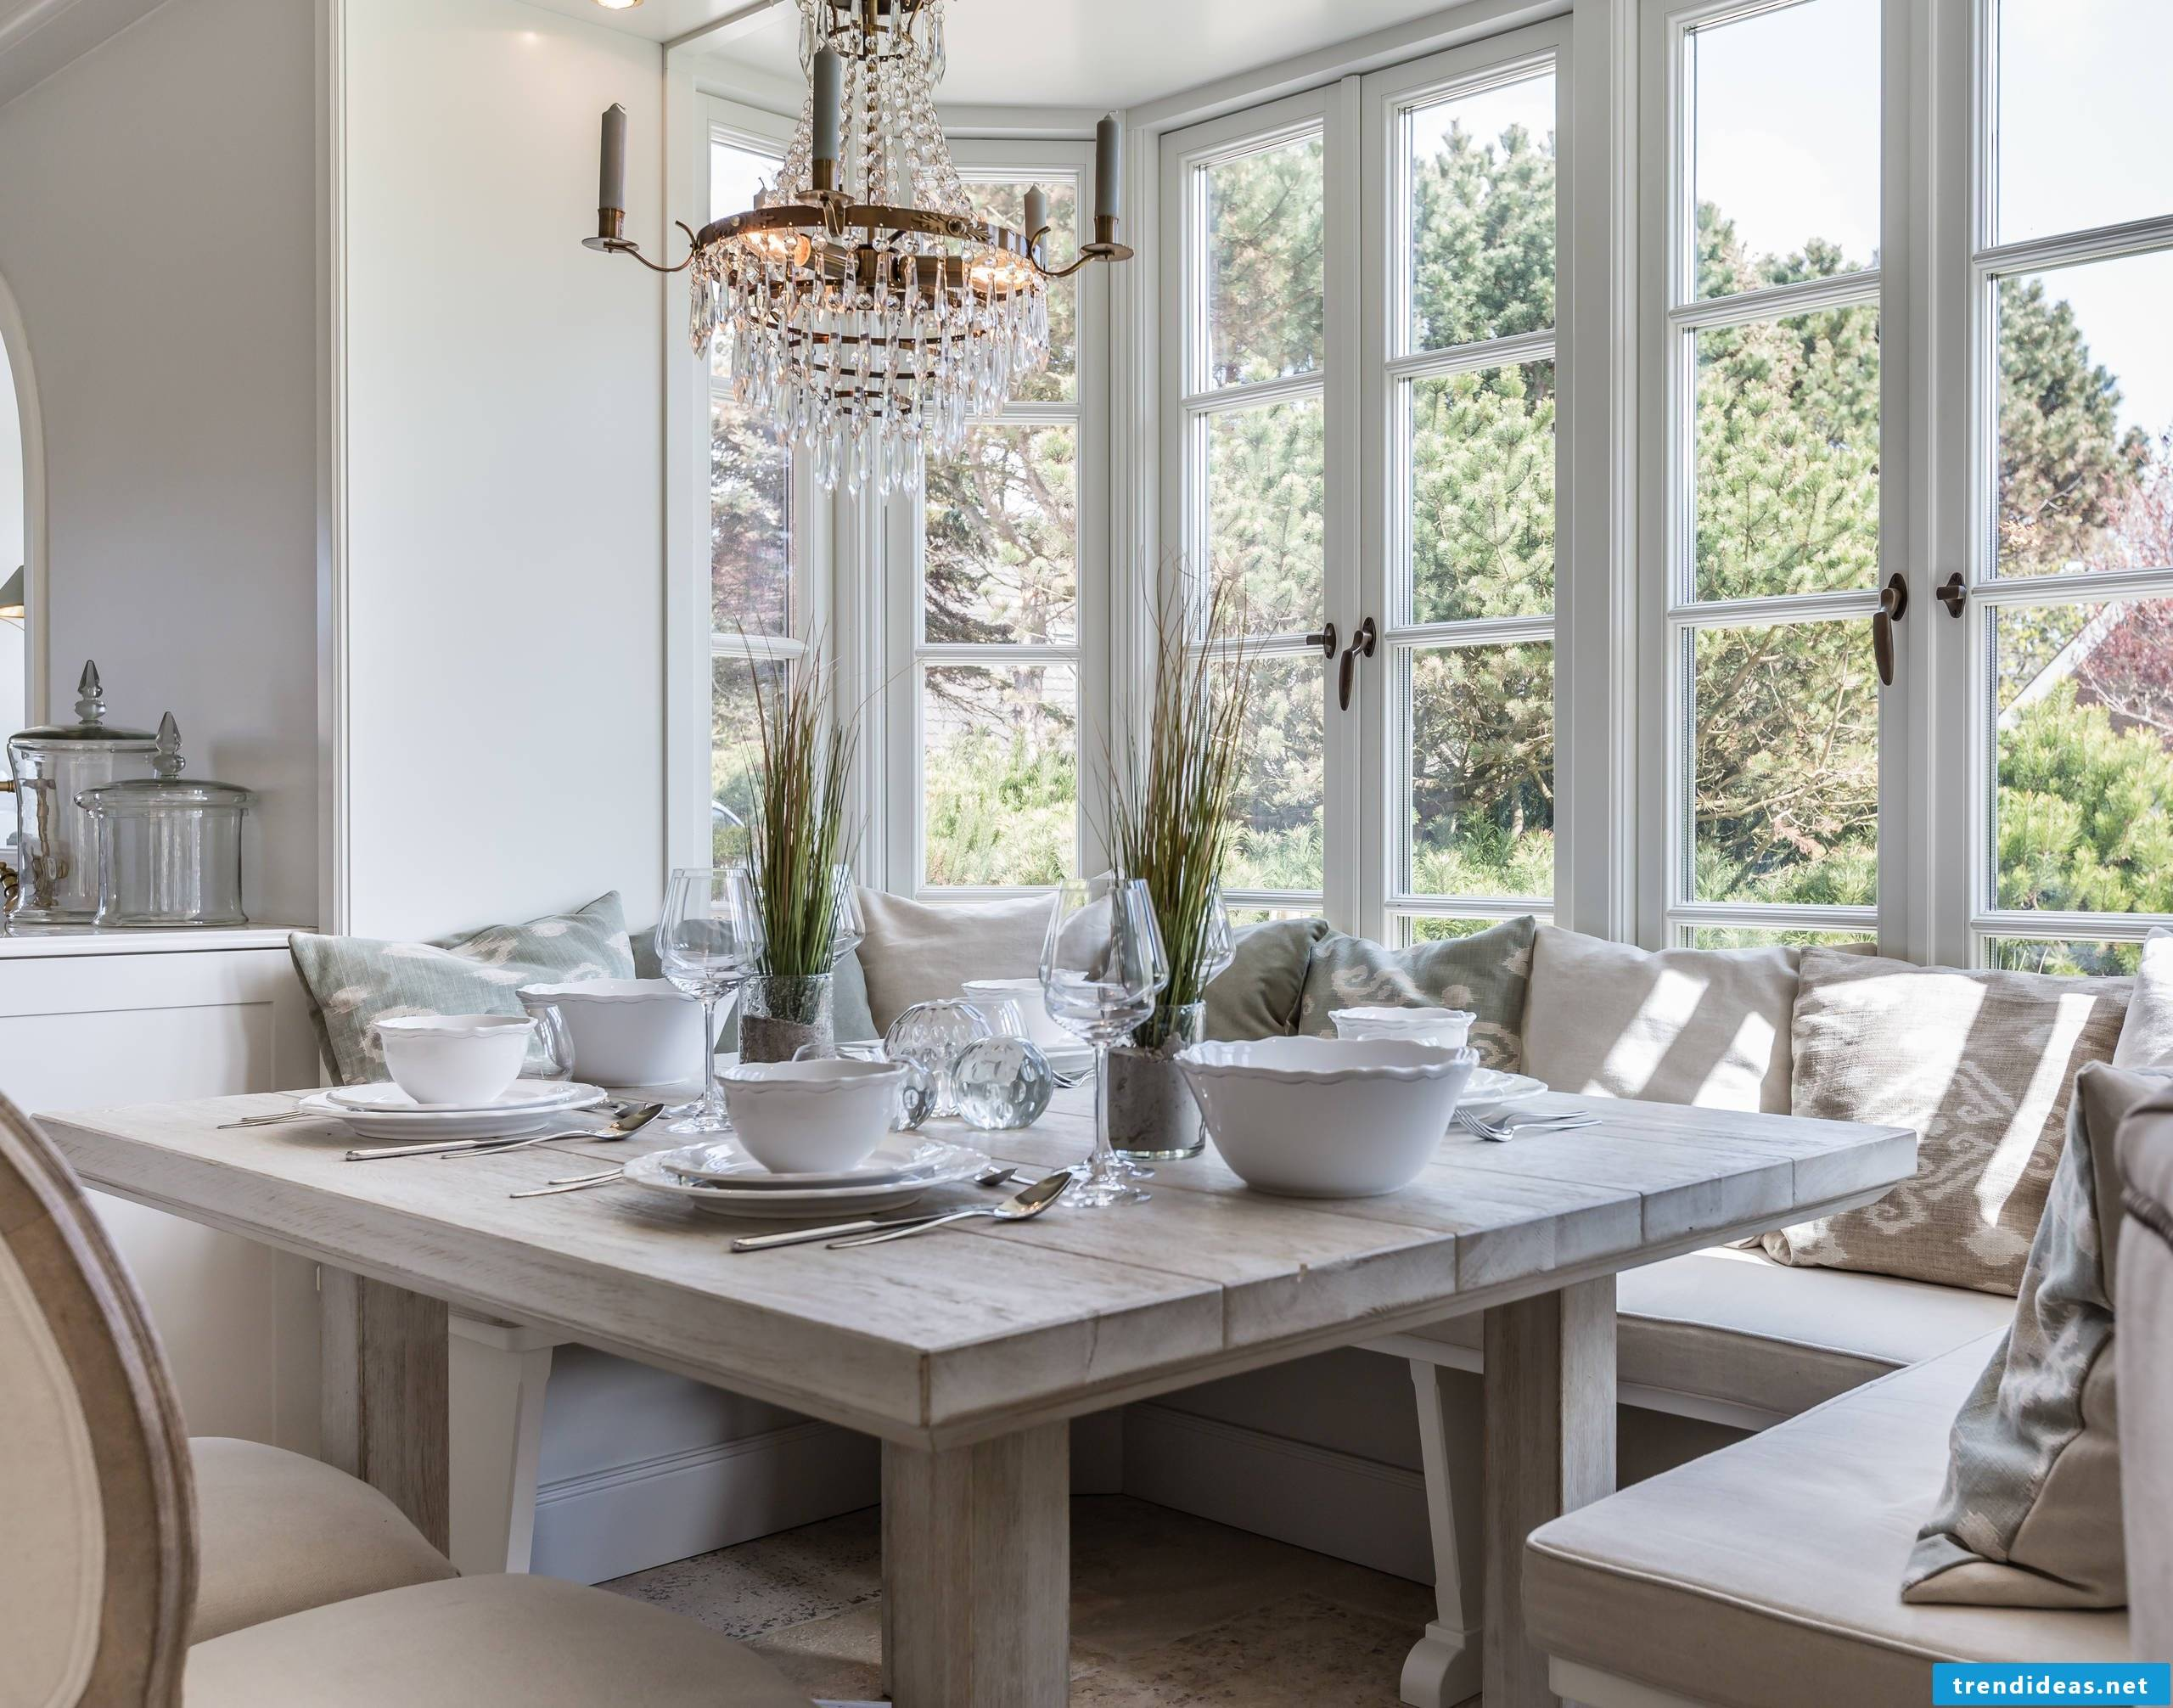 Solid wood furniture in shabby chic style